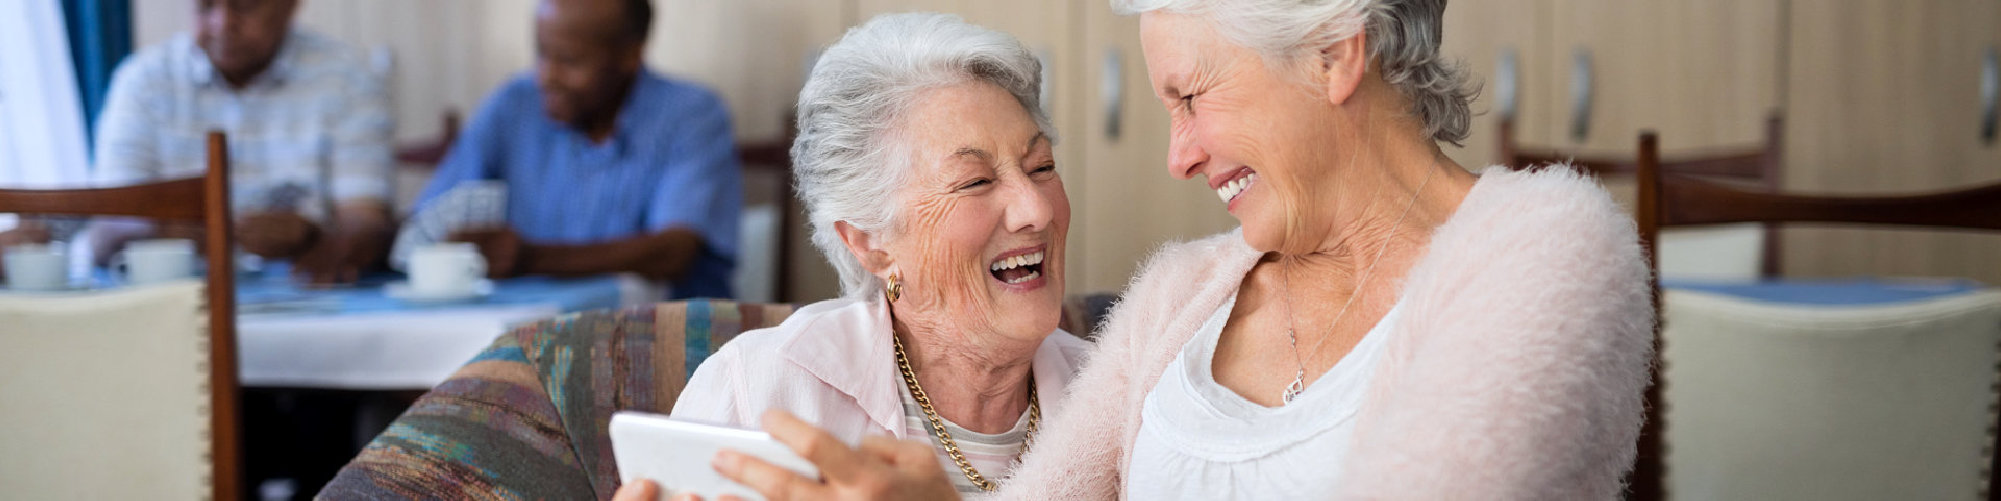 Two old woman laughing